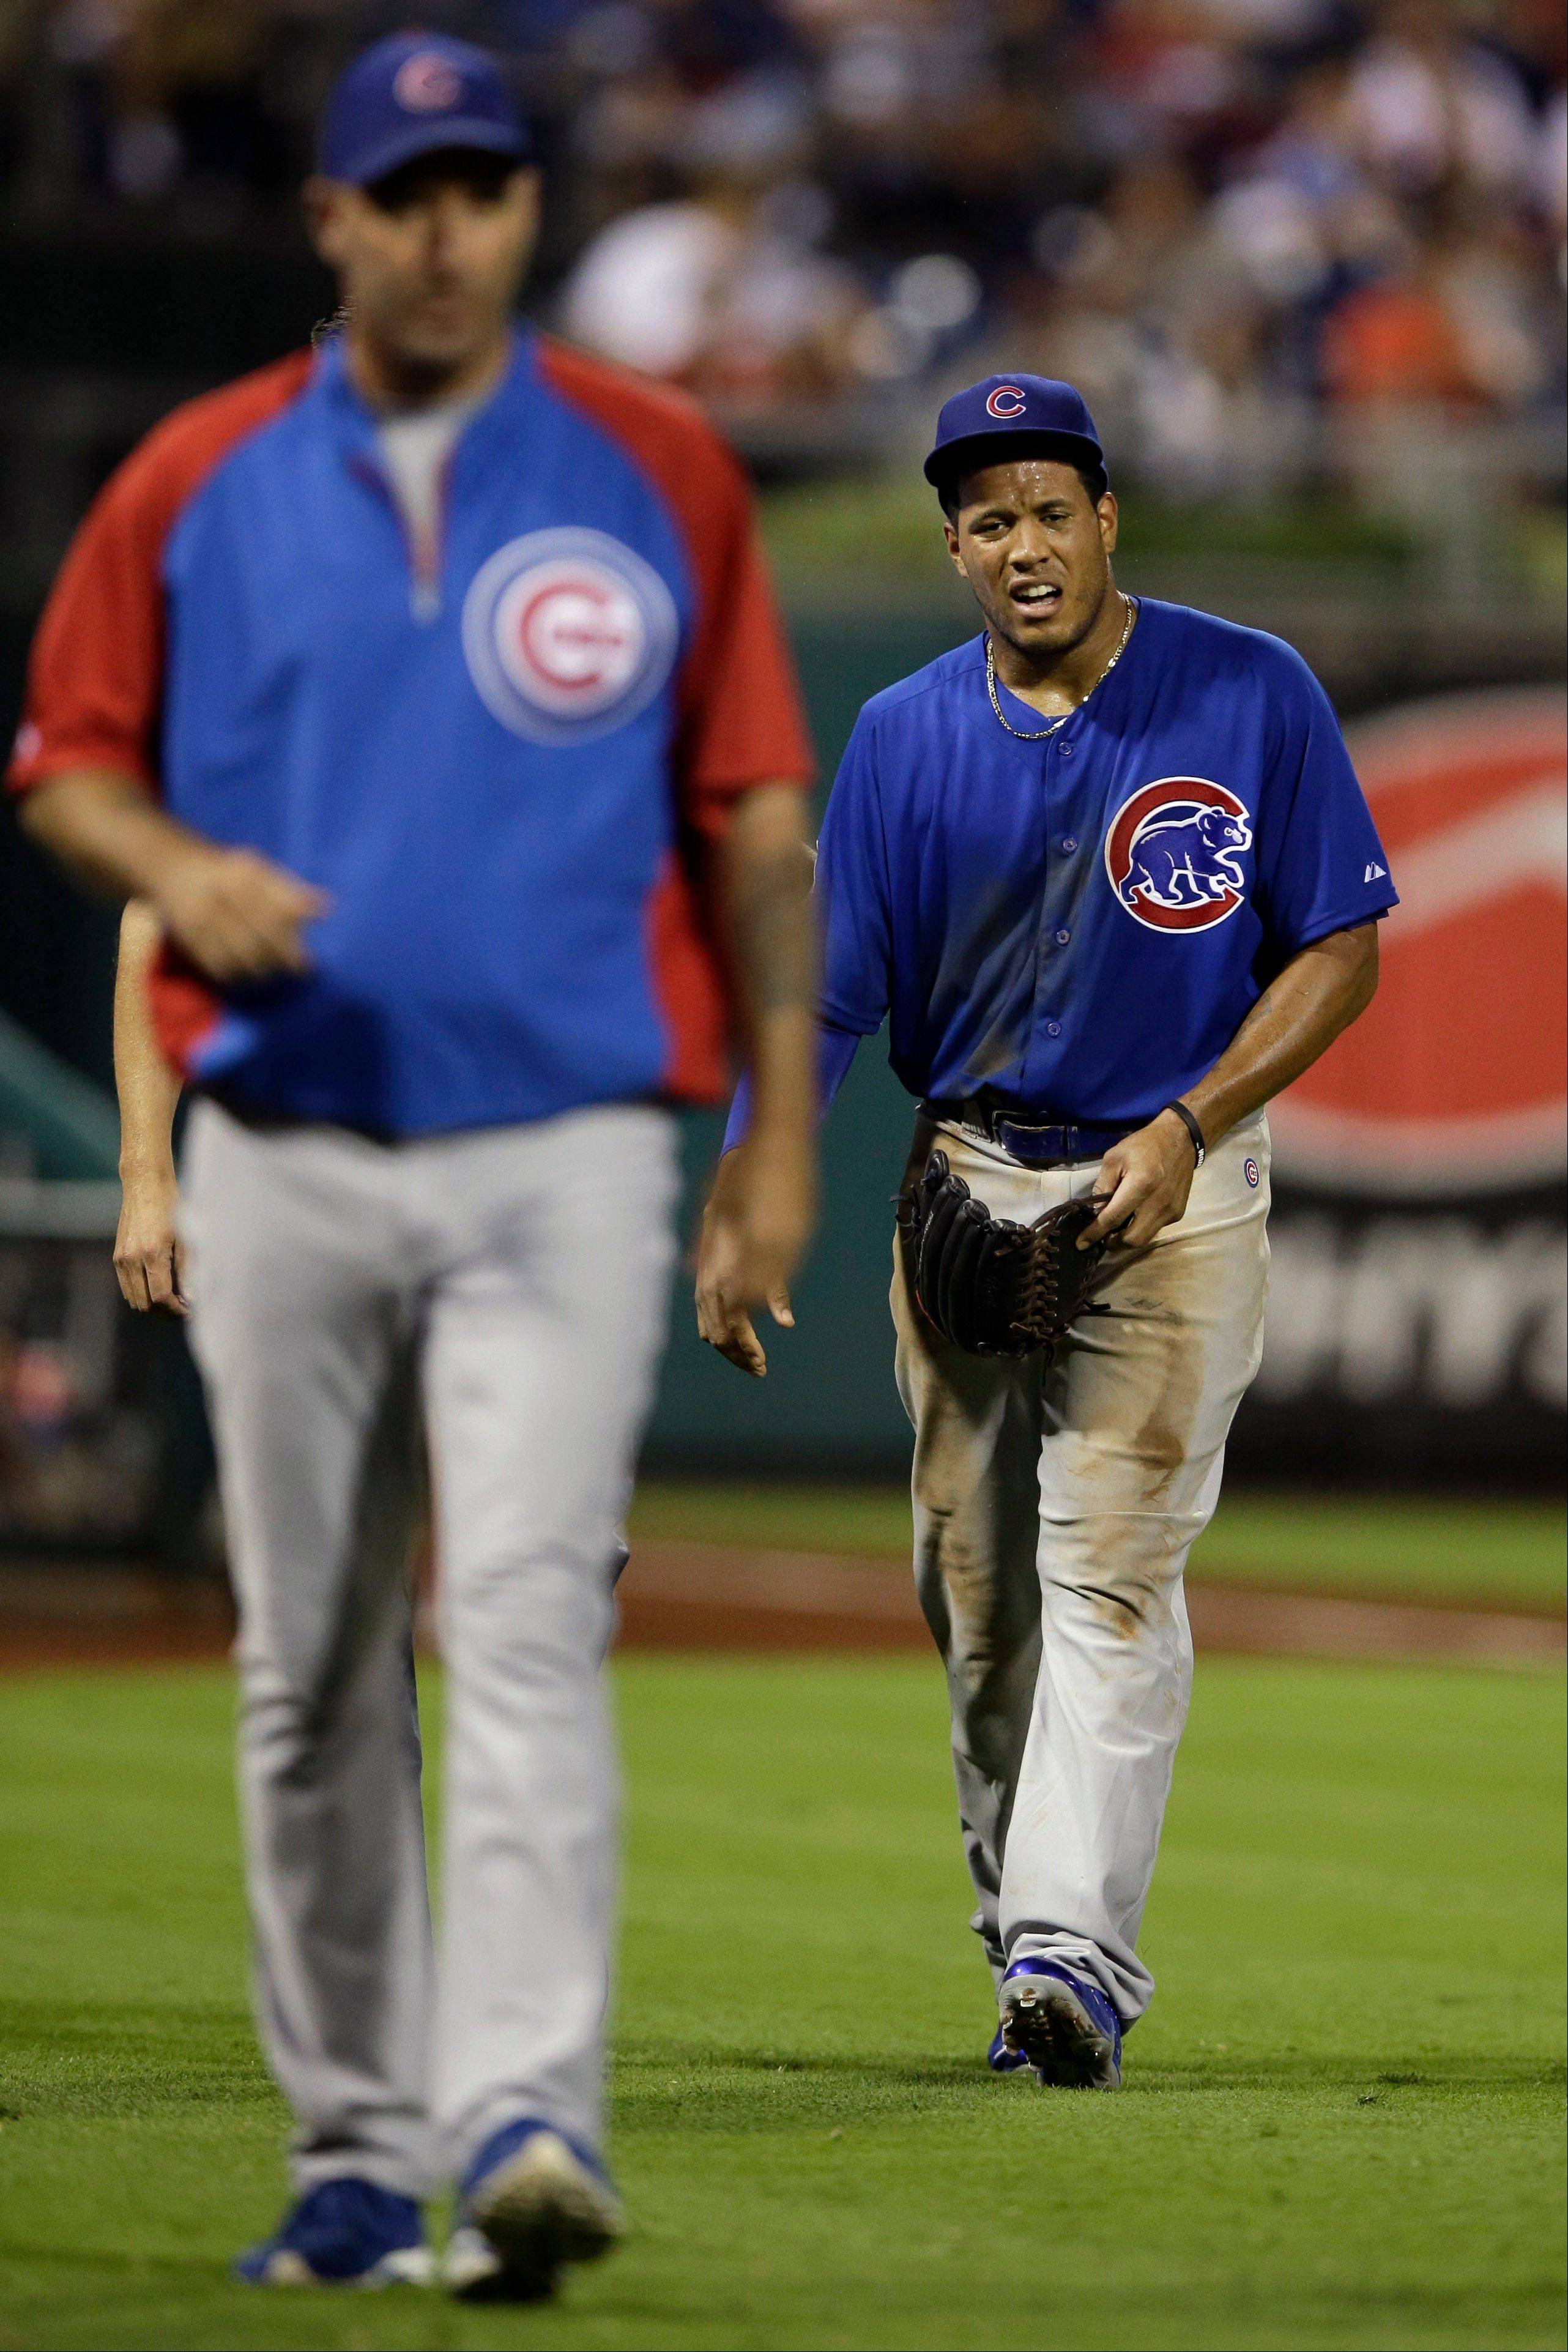 Chicago Cubs' Thomas Neal, right, walks off the field after an injury during the seventh inning of a baseball game against the Philadelphia Phillies, Wednesday, Aug. 7, 2013, in Philadelphia.